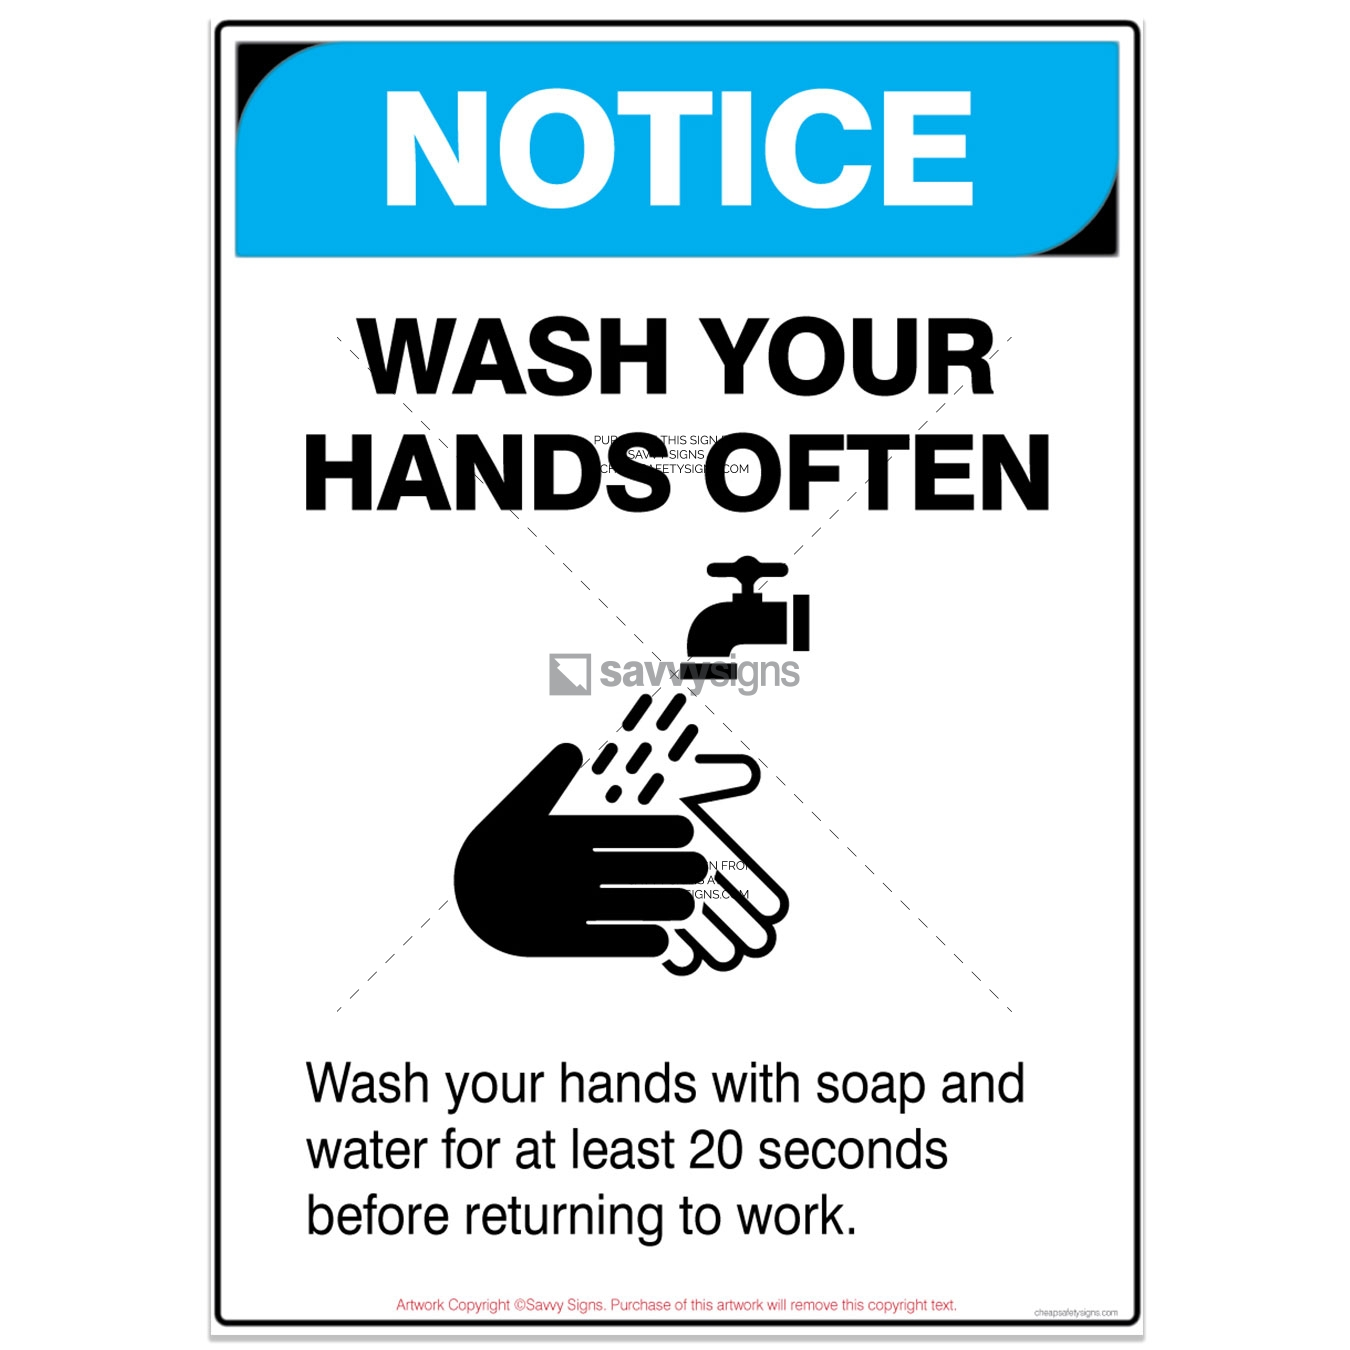 SSNOCOV3P005-COVID19-NOTICE-Wash-Your-Hands-Often-Safety-Signs_vsq3